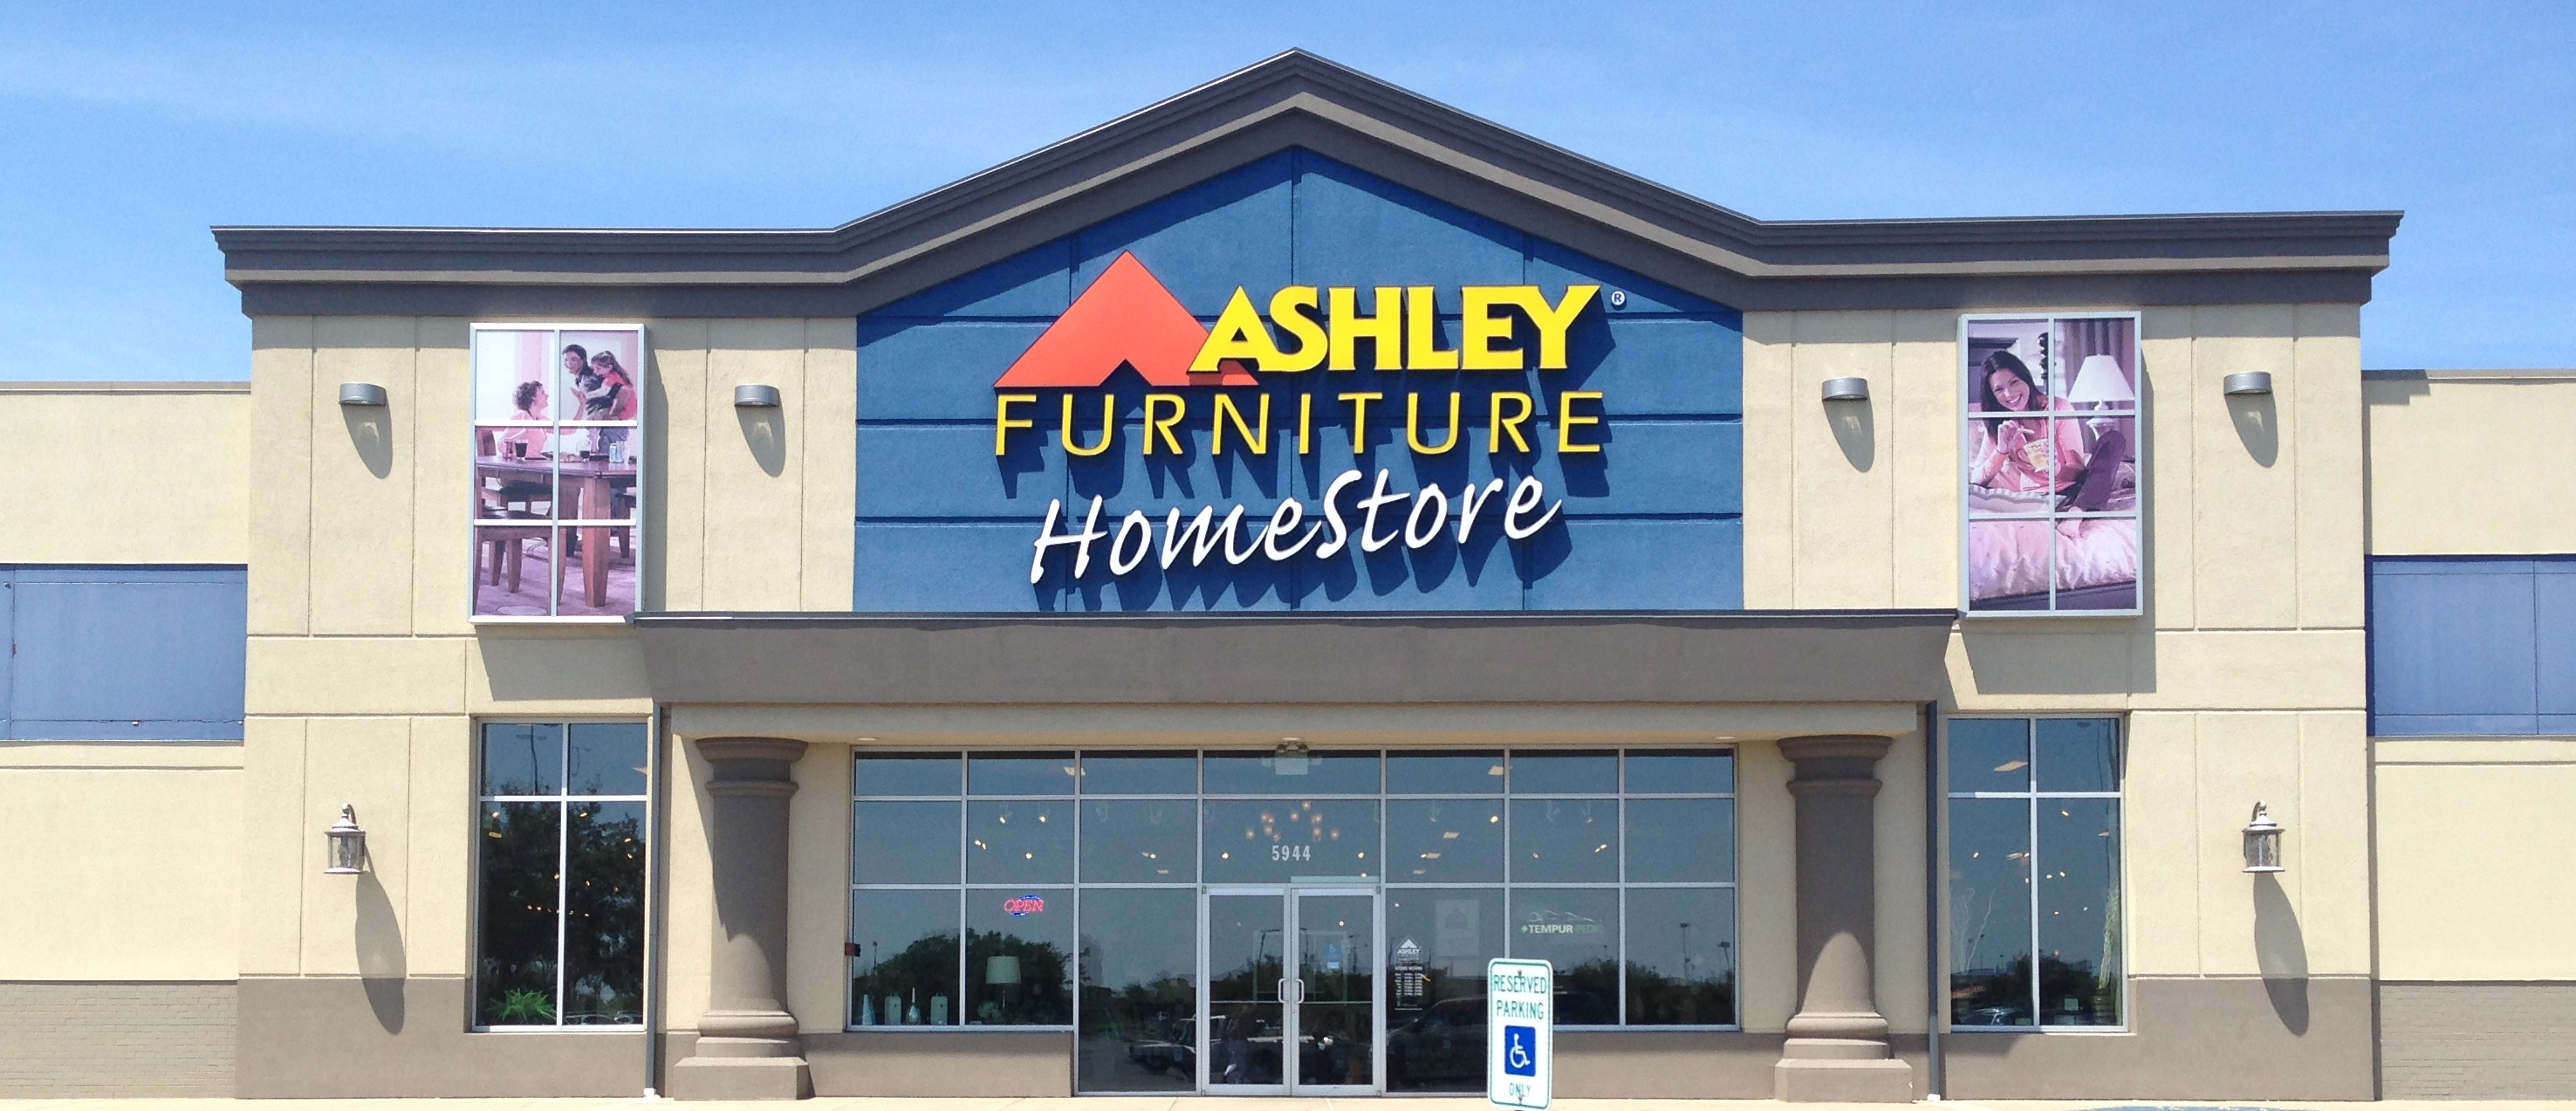 Amazing Ashley Furniture Lays Off 840 In California; Shifts Production in Fresh Ashley Furniture Locations